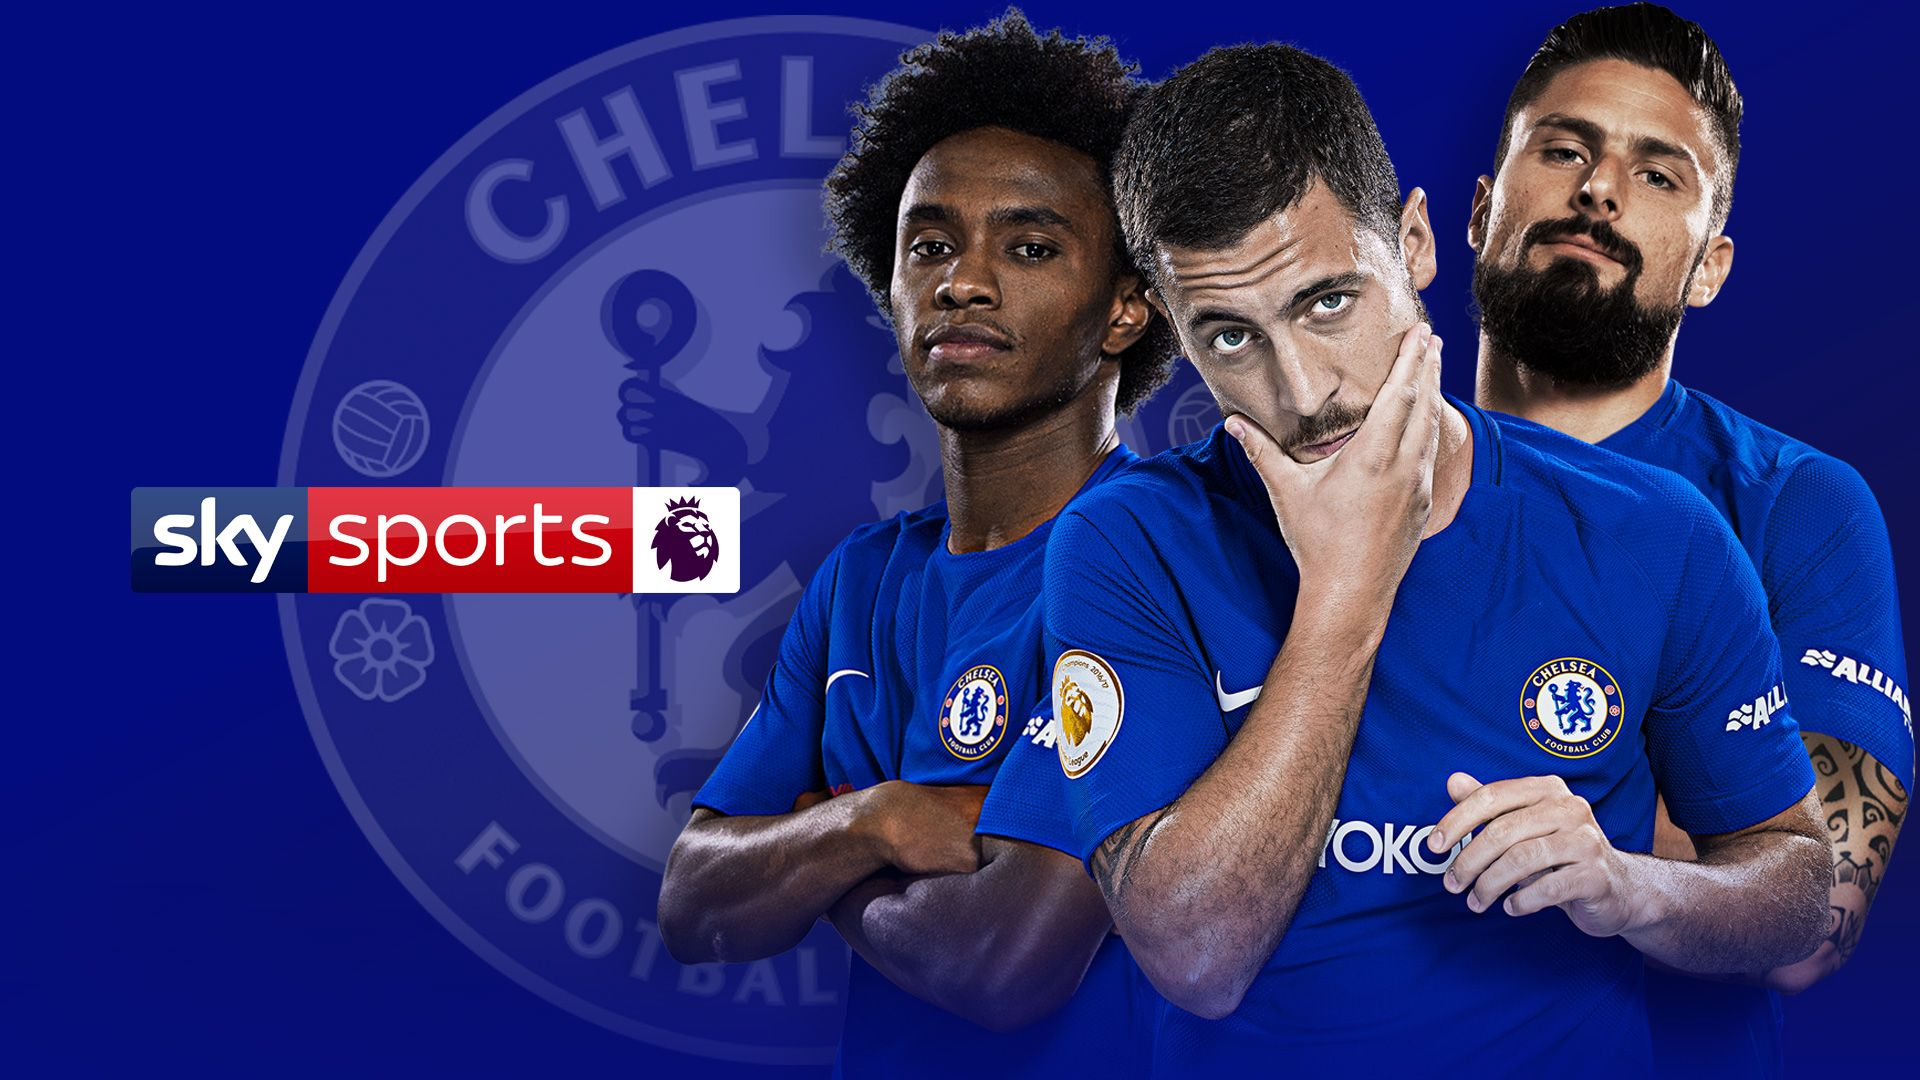 Chelsea Fixtures Premier League 2018 19 Football News Sky Sports